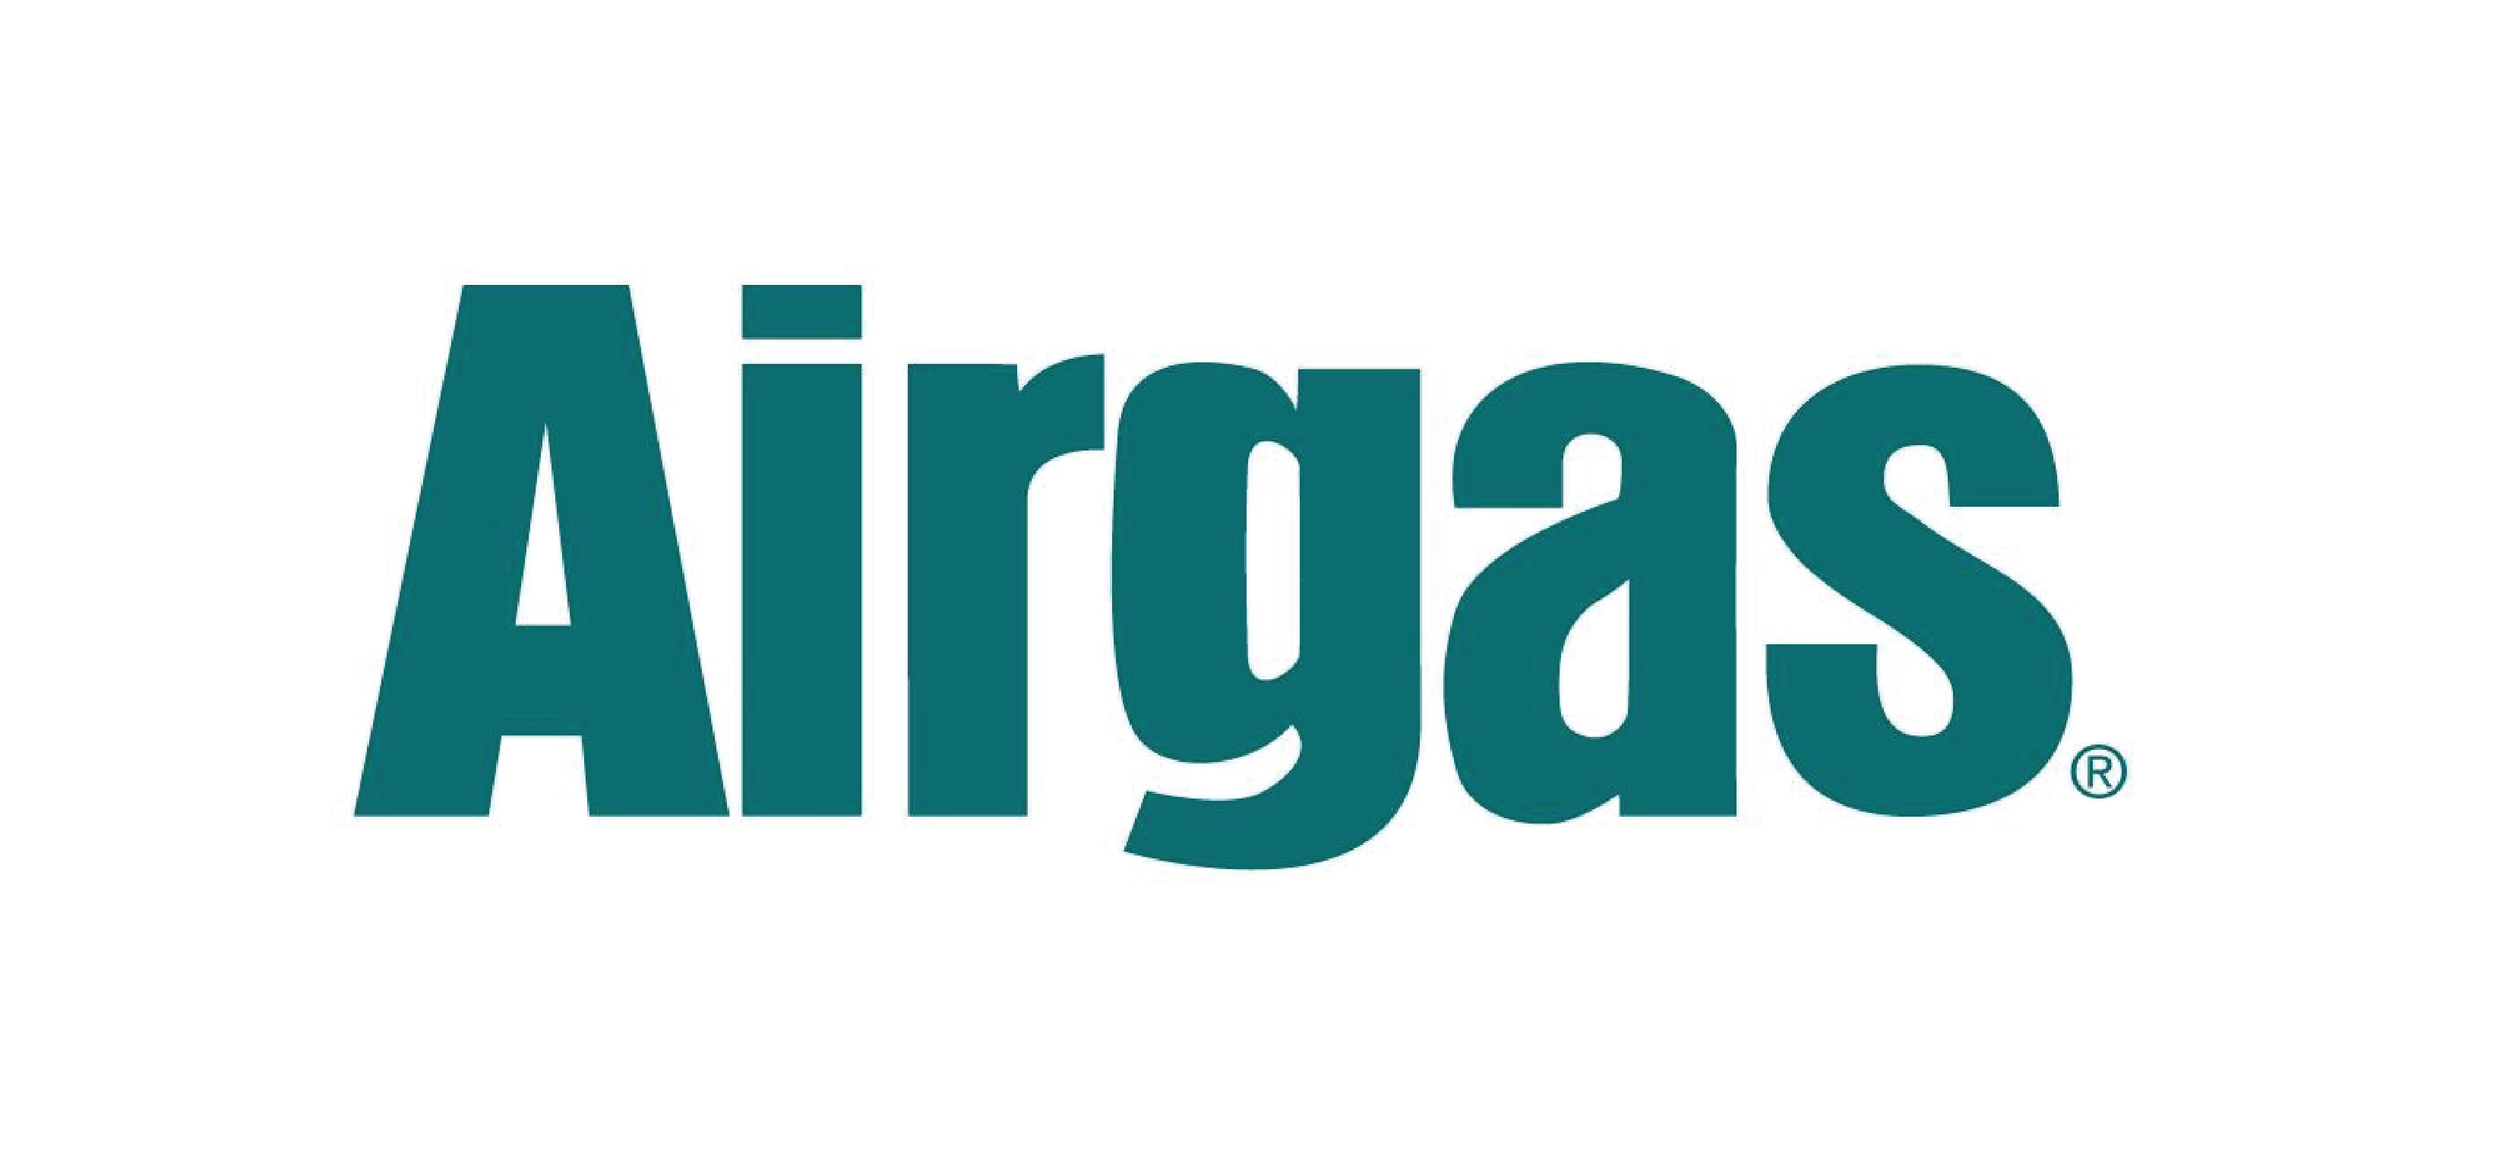 airgas.png